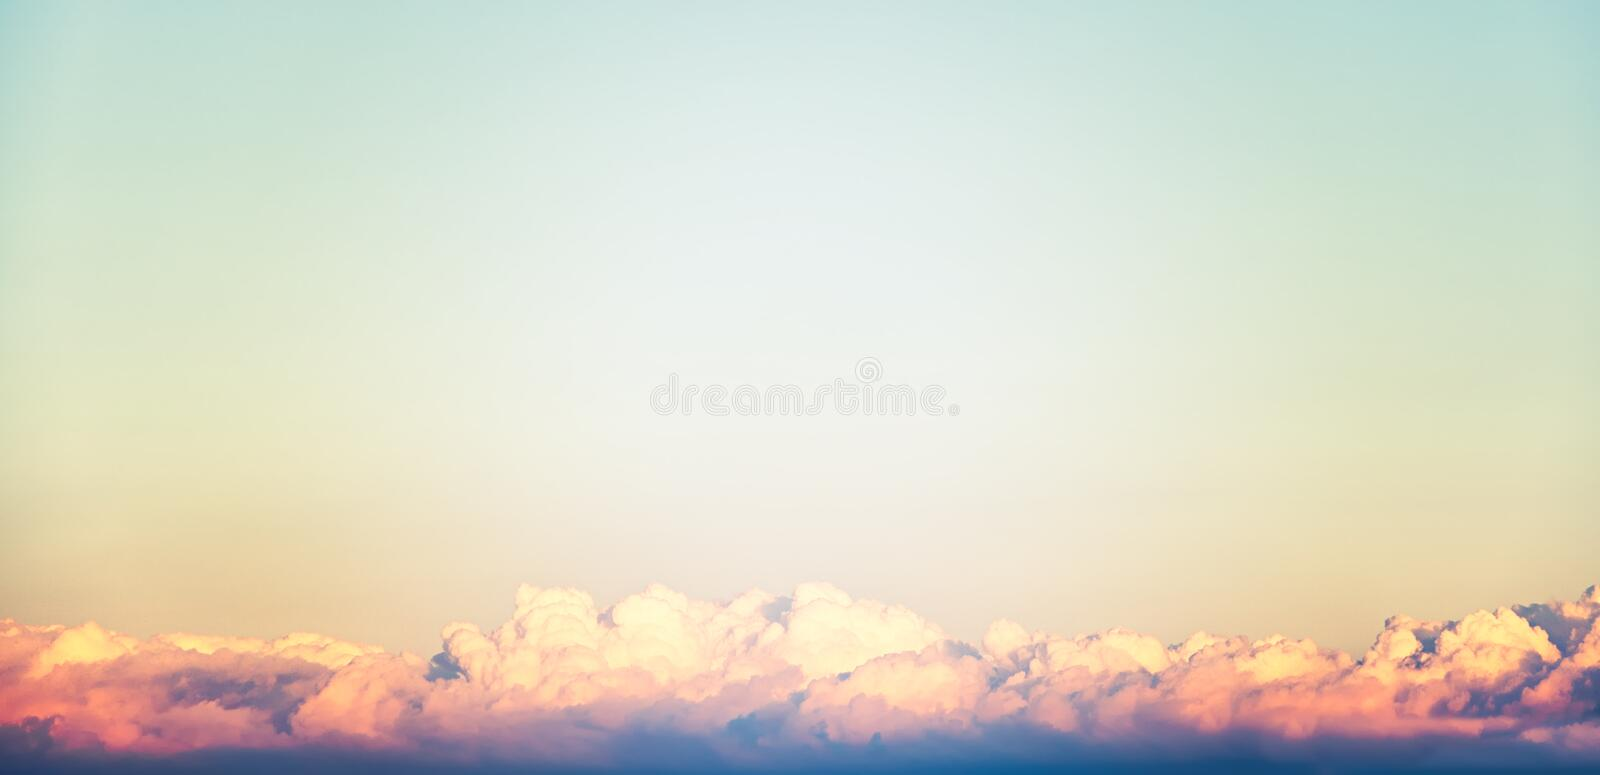 A new heaven and earth concept: Dramatic sun ray with orange sky and clouds dawn texture background with space for text web banner stock photography